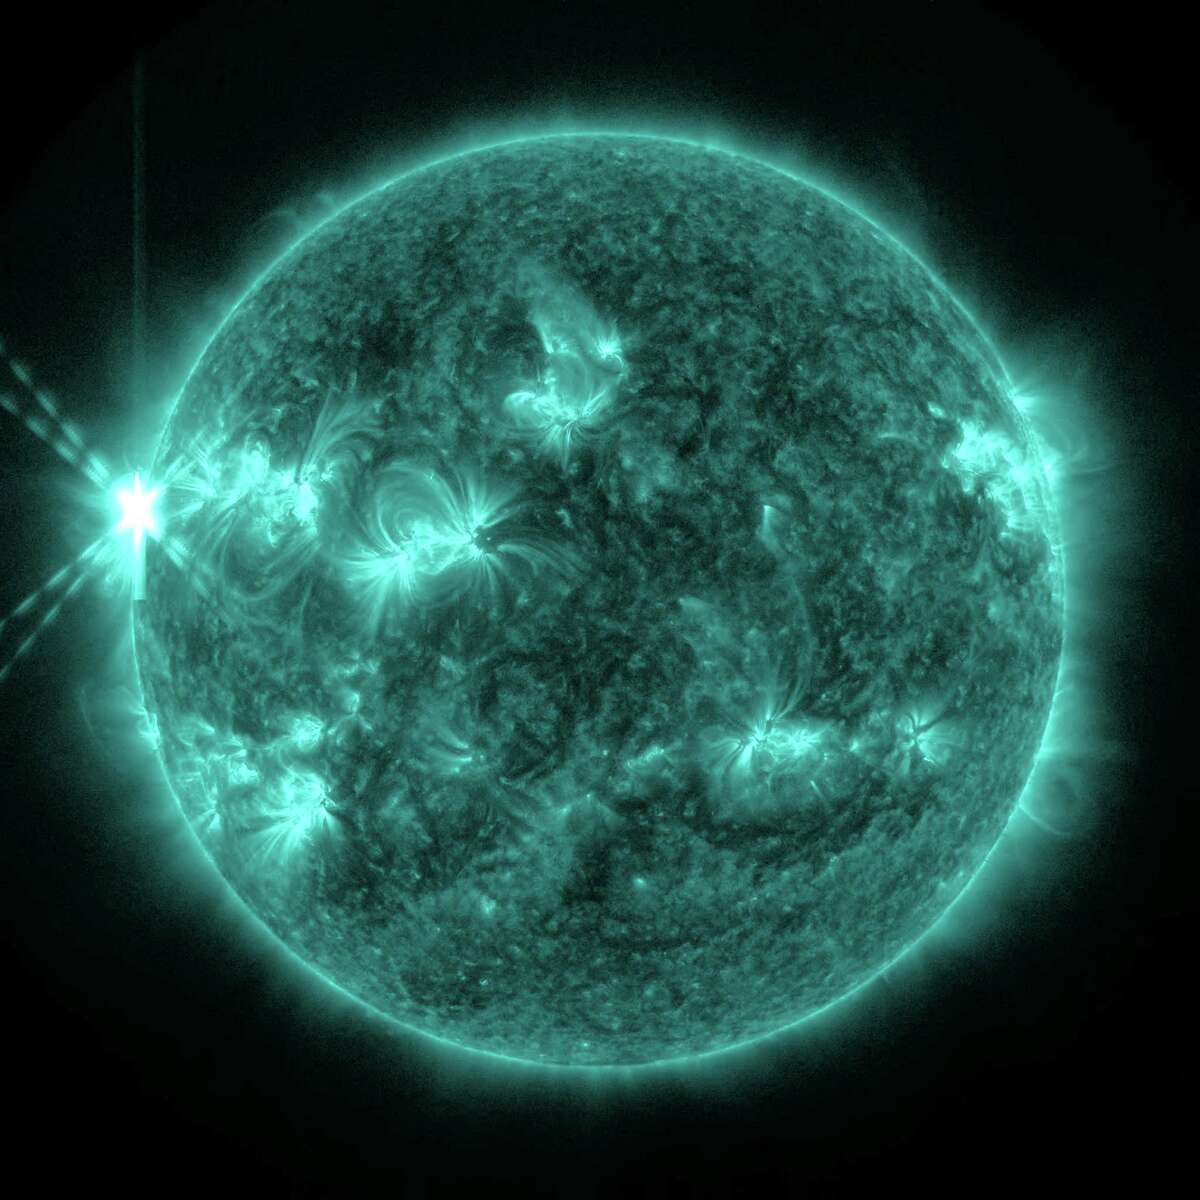 On May 13, 2013, an X2.8-class flare erupted from the sun -- the strongest flare of 2013 to date. This image of the flare, shown in the upper left corner, was captured by NASA's Solar Dynamics Observatory in light of 131 angstroms, a wavelength which is particularly good for capturing the intense heat of a solar flare and which is typically colorized in teal. Credit: NASA/SDO